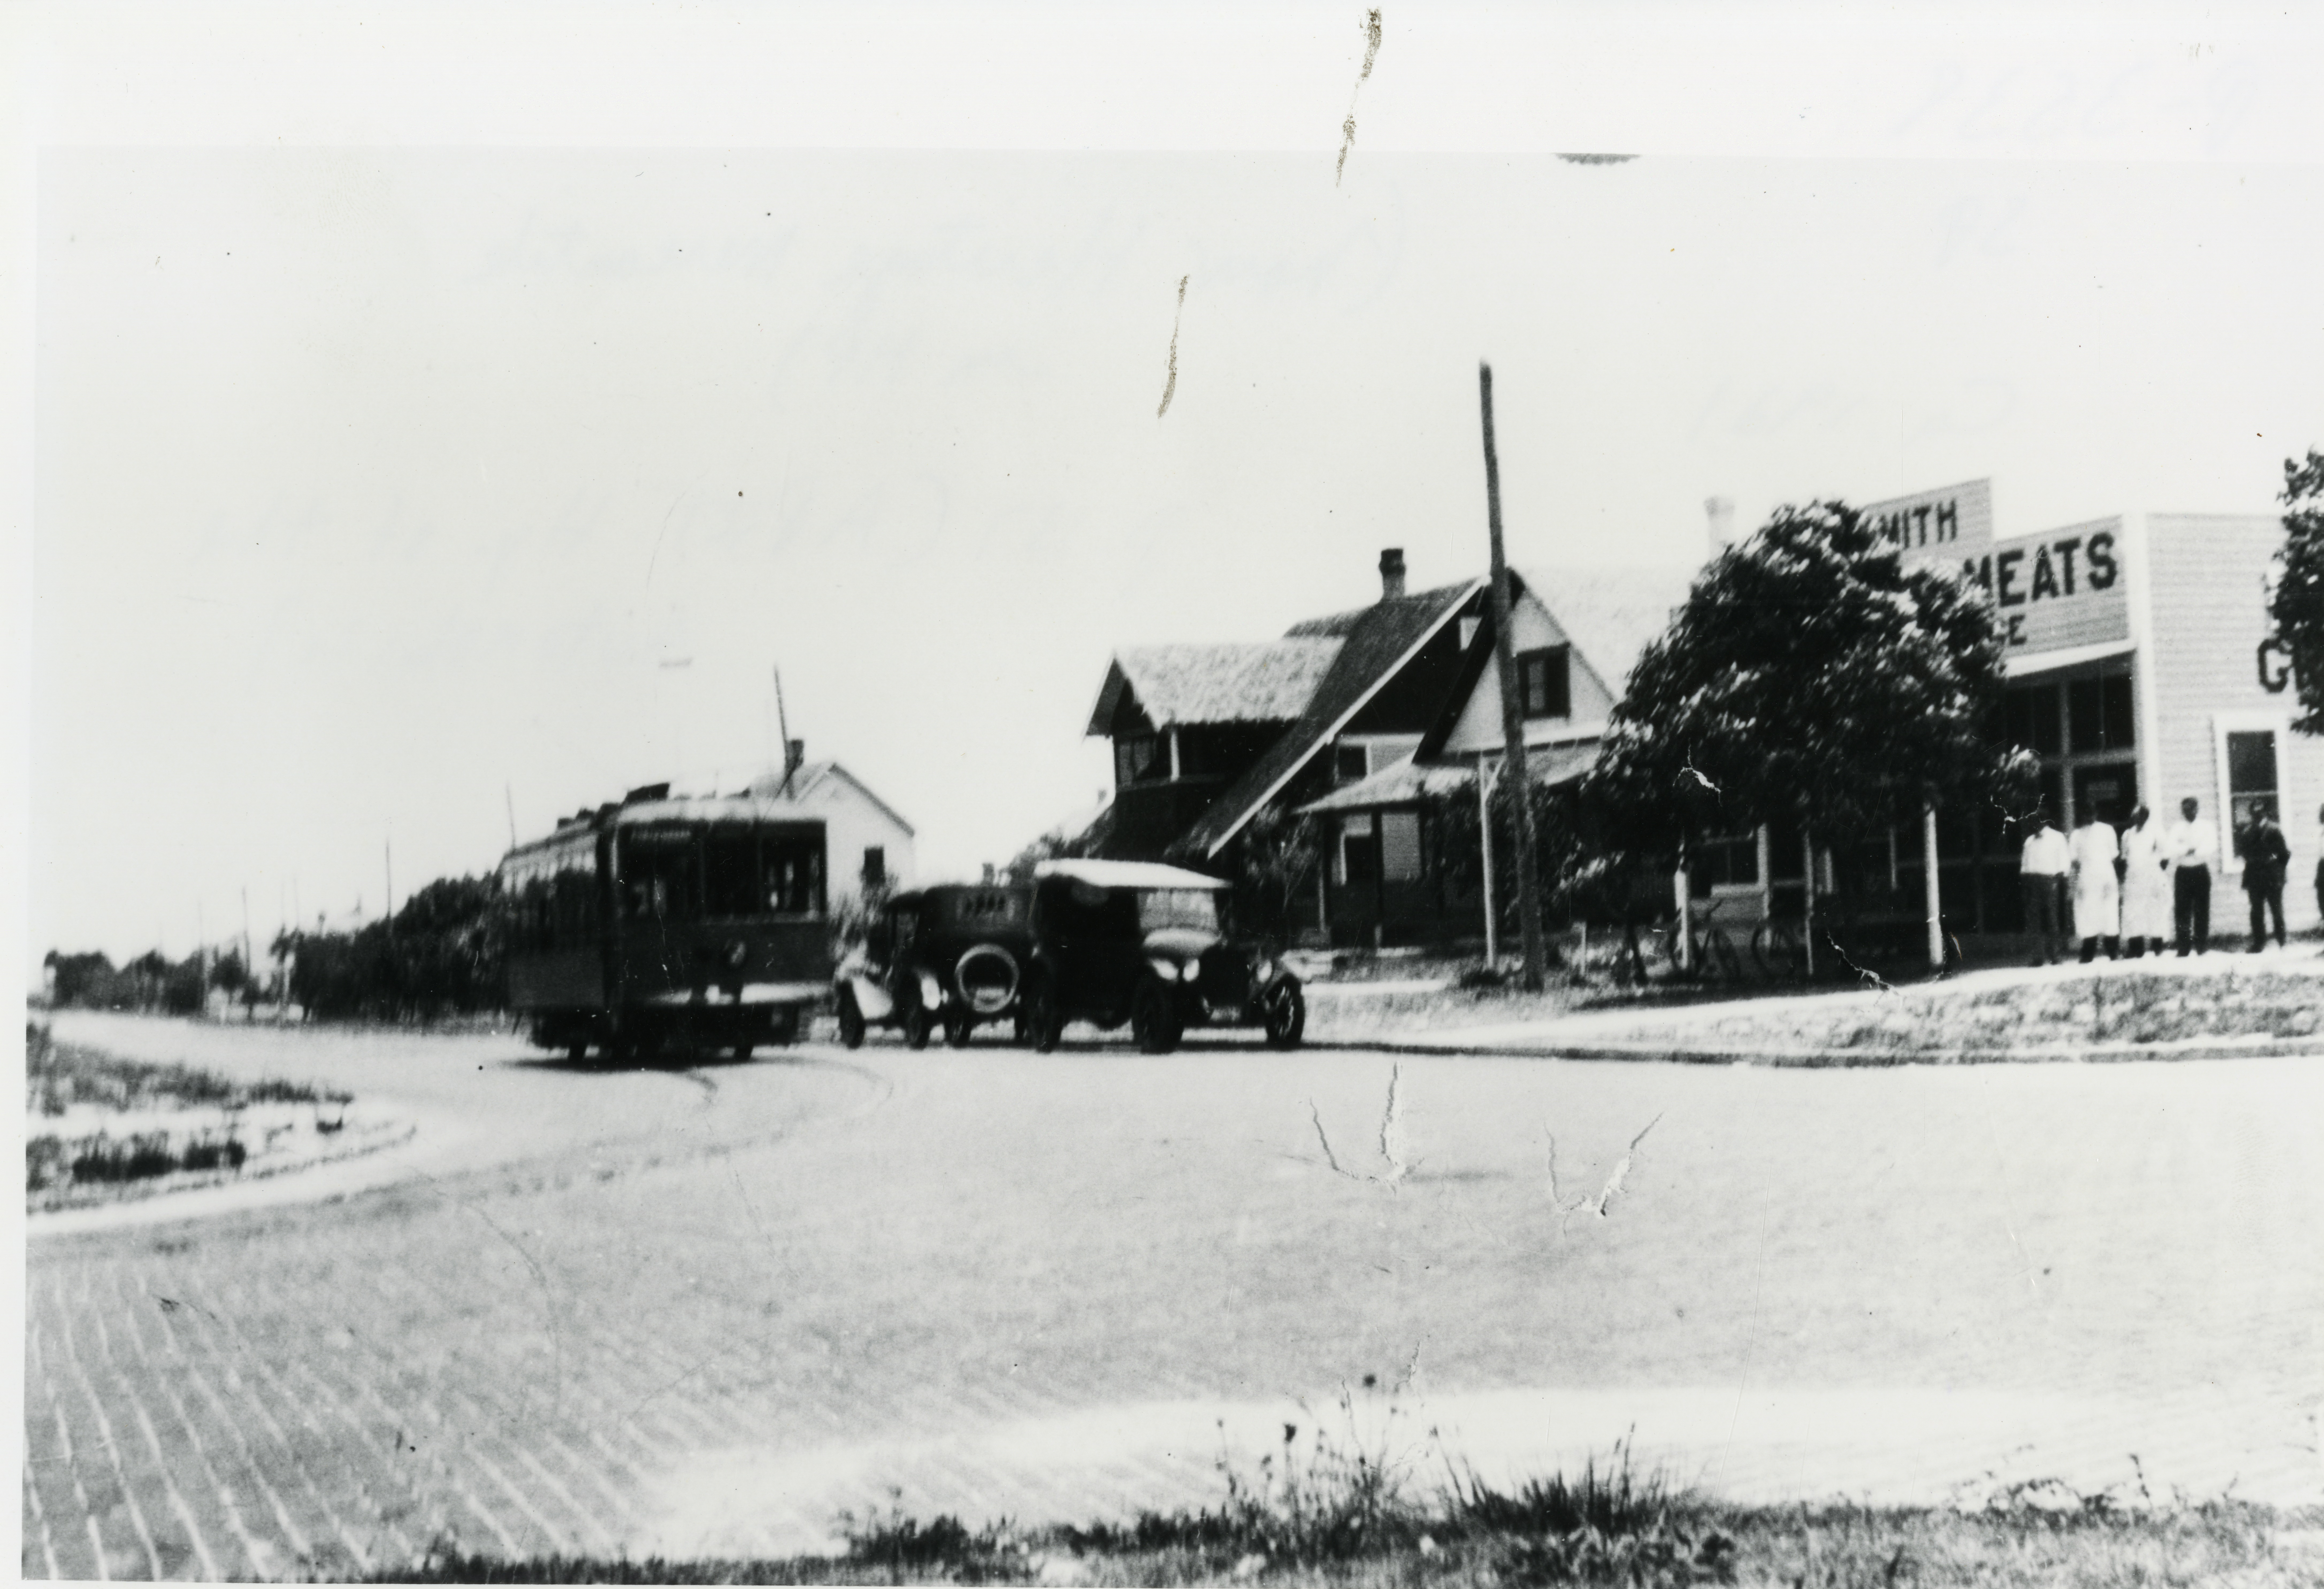 View of 6th Avenue South and H.C. Smith Store, St. Petersburg, Florida, 1921.